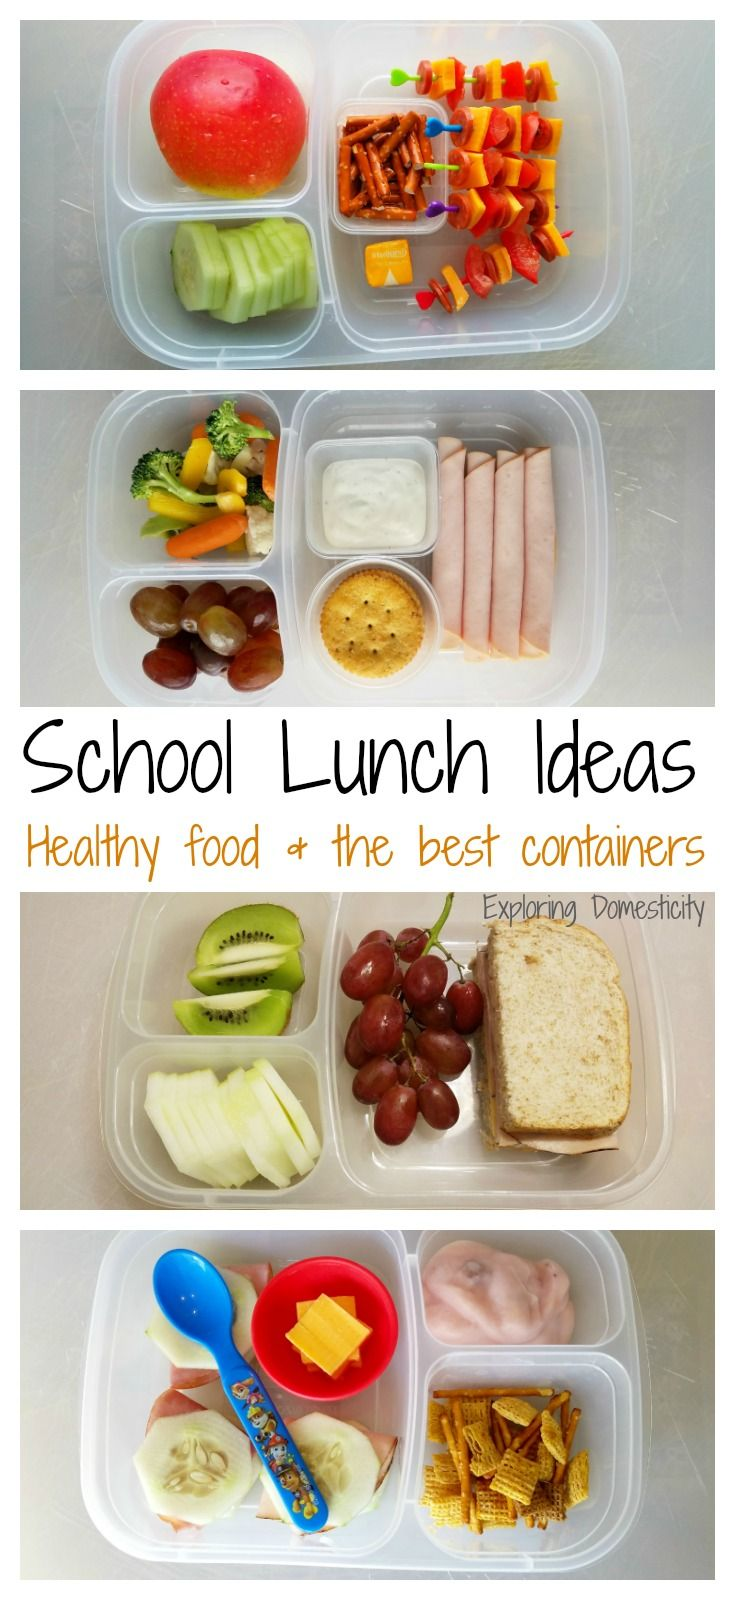 School Lunch Ideas: healthy food and the best containers